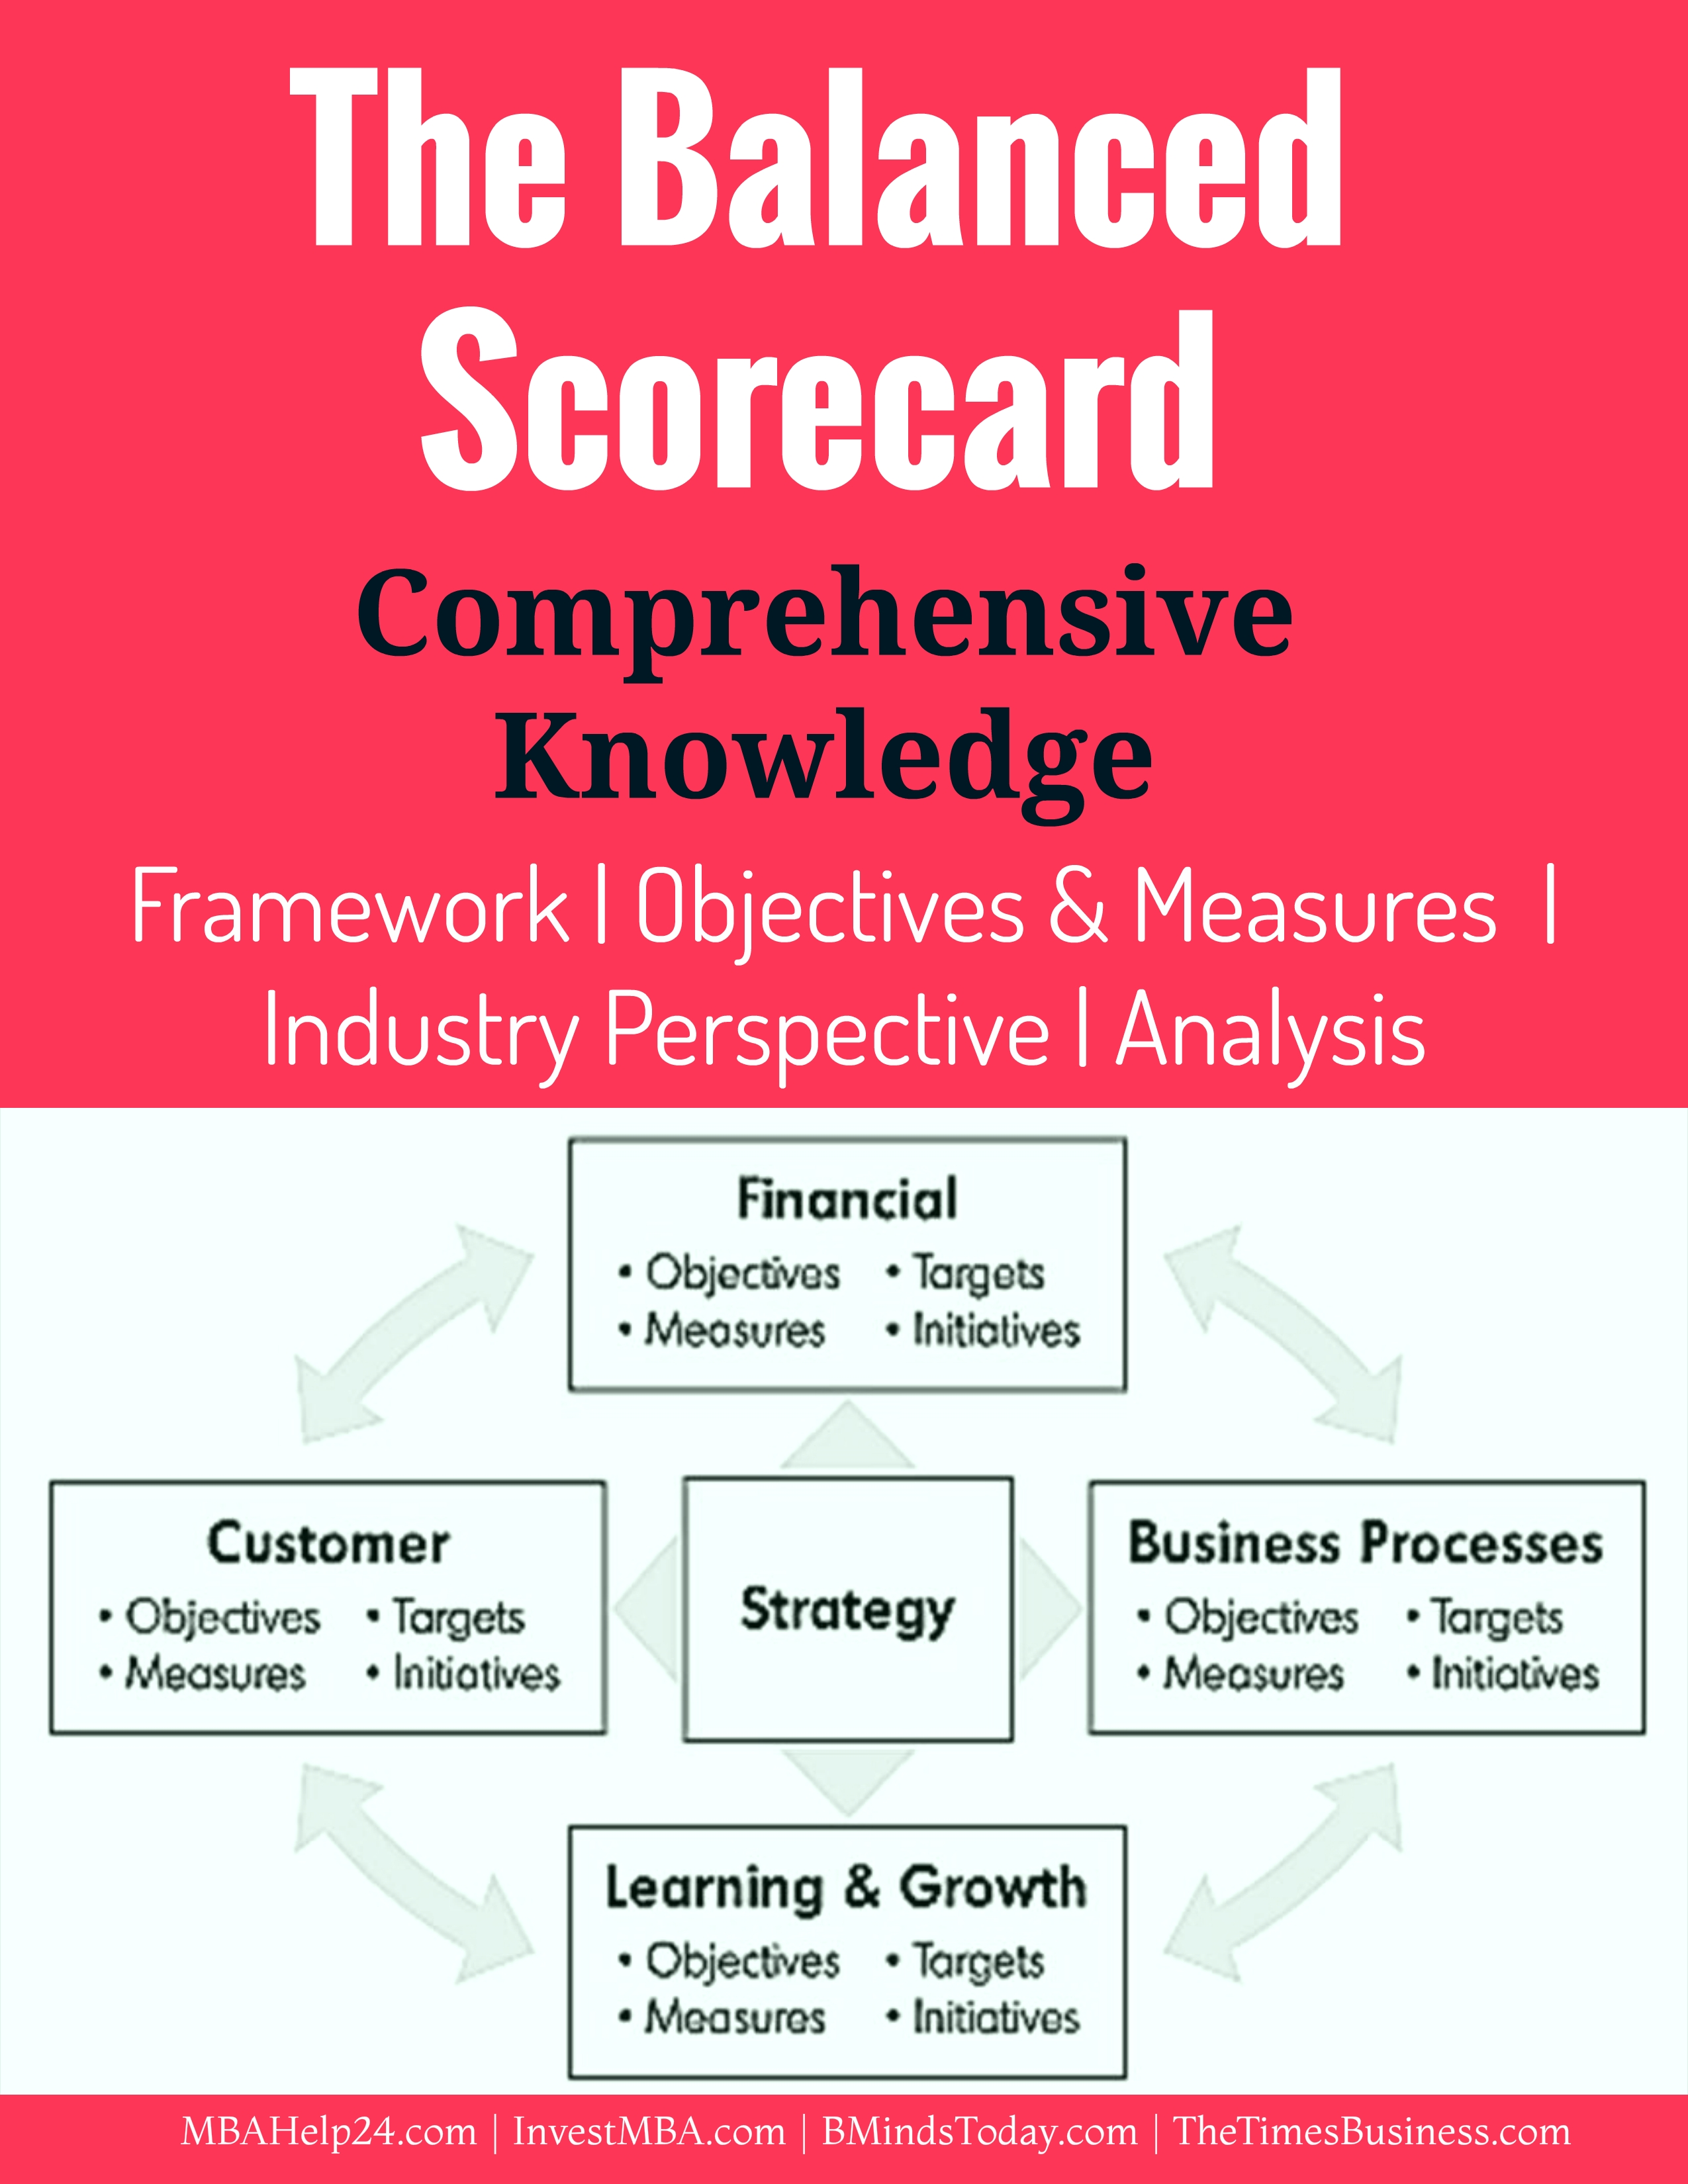 The Balanced Scorecard | Comprehensive Knowledge | Objectives and Measures of Four Perspectives Balanced Scorecard The Balanced Scorecard | Comprehensive Knowledge | Measures | Perspectives The balanced scorecard analysis and framework